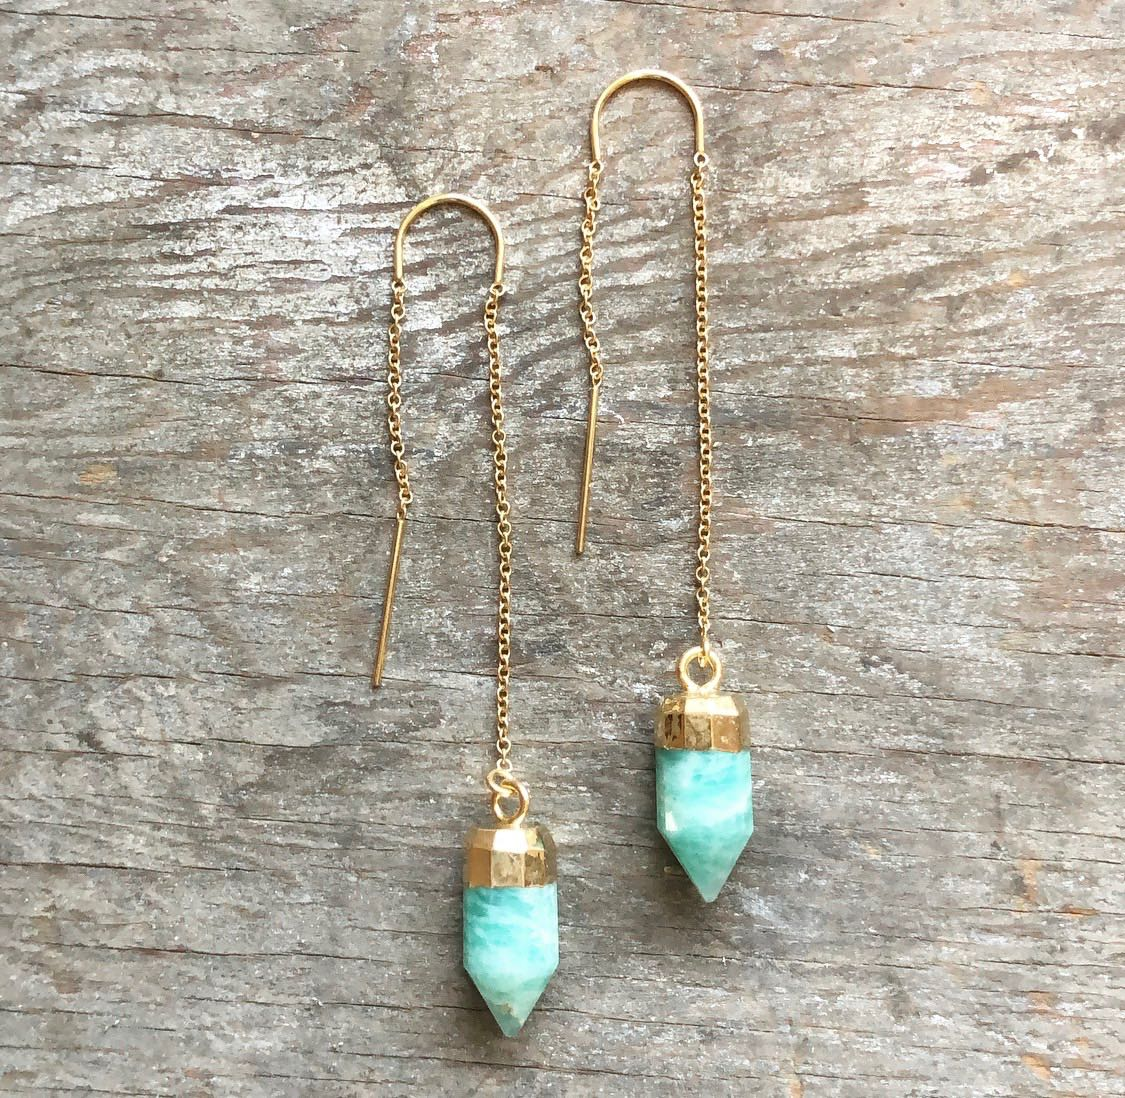 2Dy4: Amazonite & Gold Filled Threader Earrings